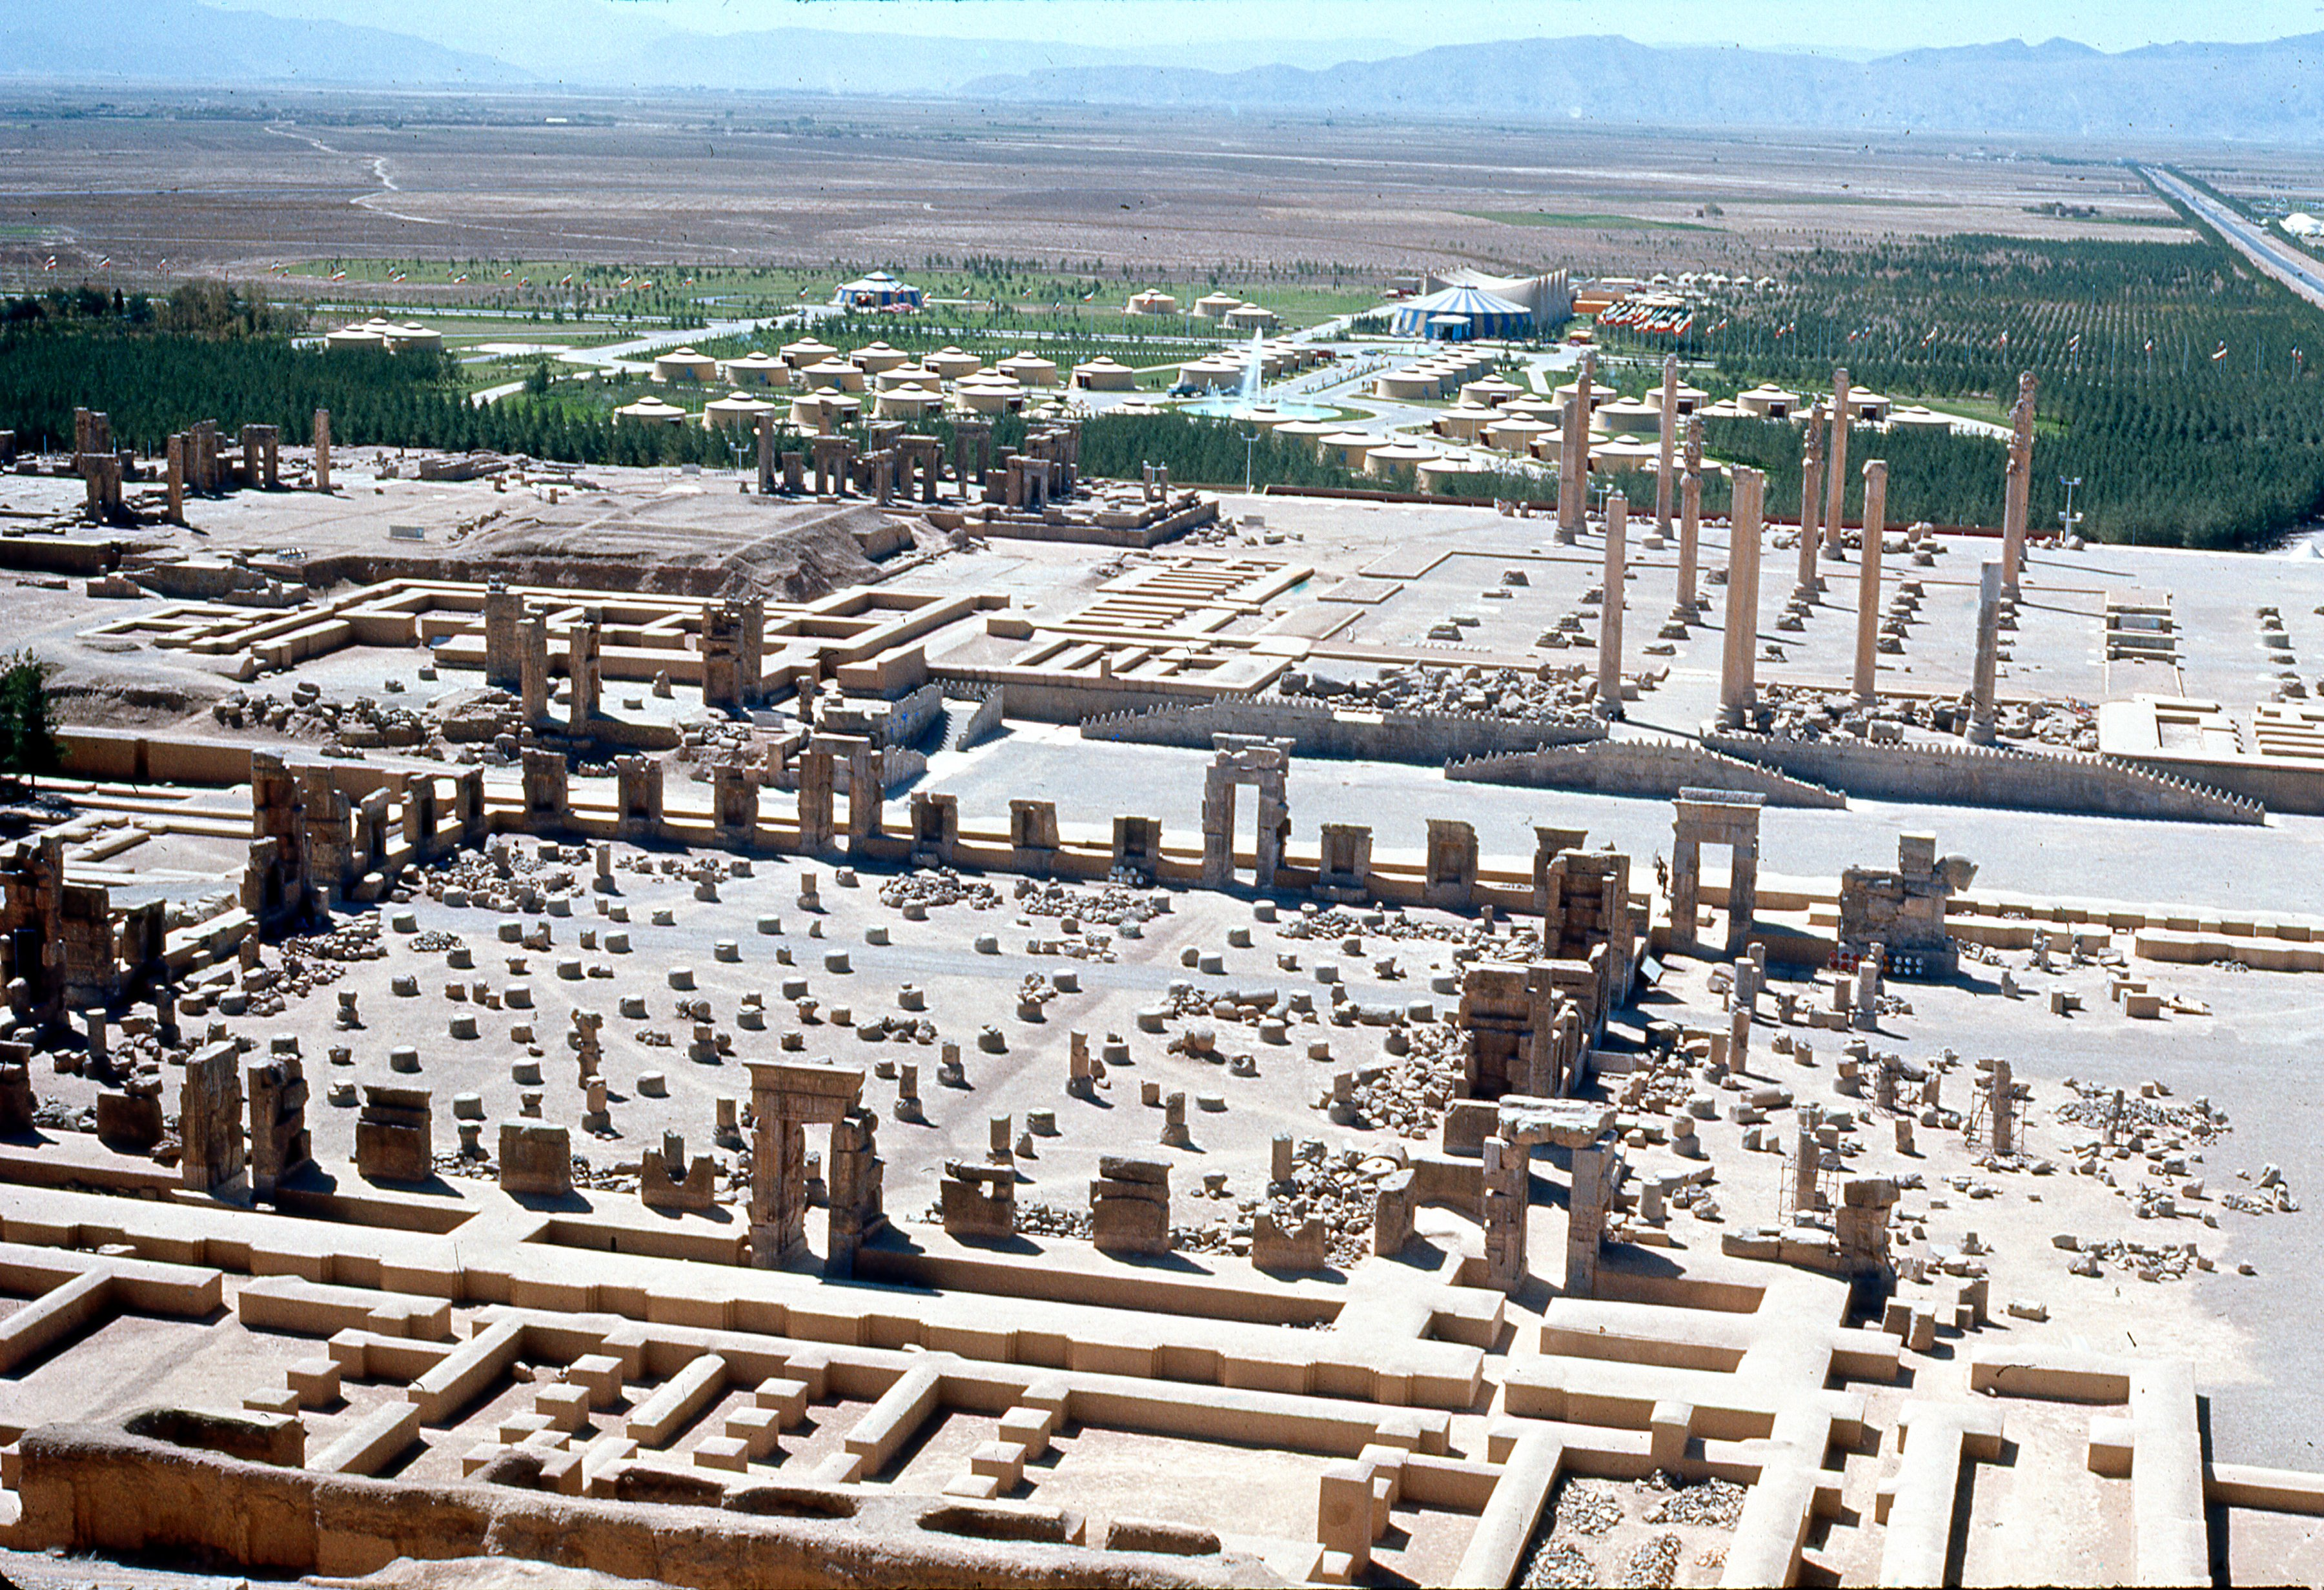 ancient site of Persepolis and tent city built for celebration of 2500th anniversary of founding of Iranian Empire in trent city erected in ruins of Persepolis and attended by foreign dignitaries in October 1971.